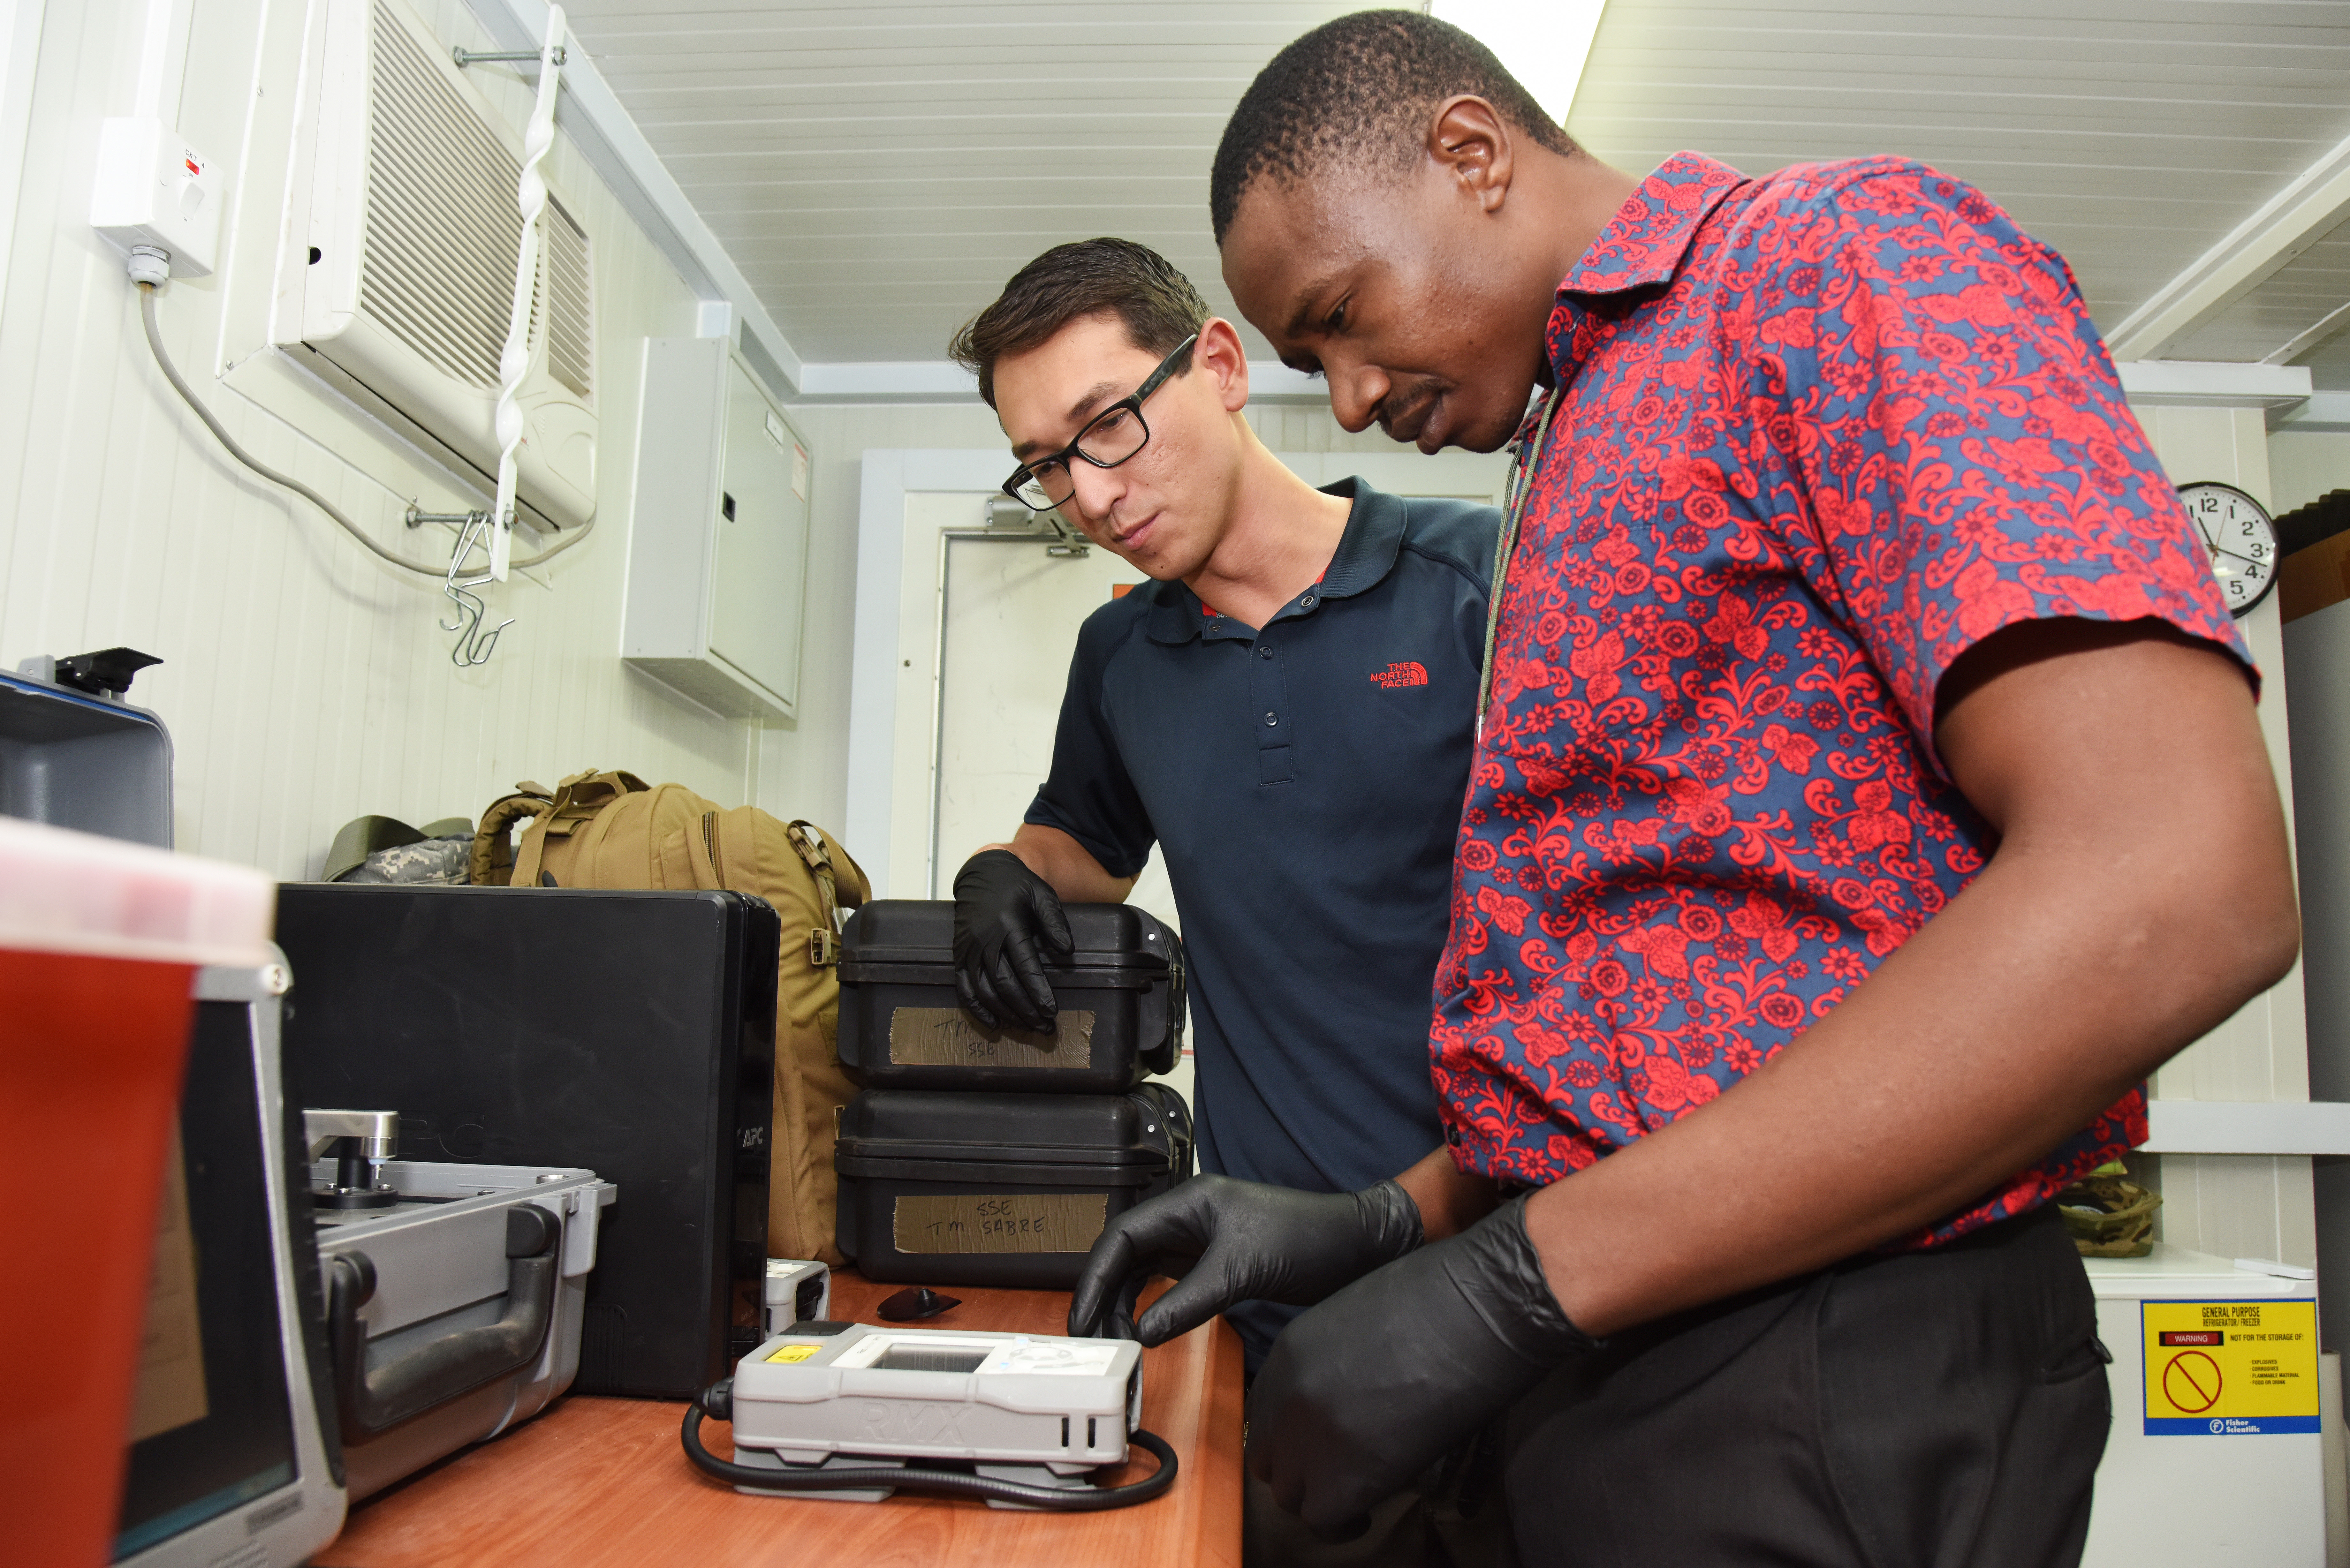 U.S. Army Sgt. Brian Burgess, Joint Theater Forensic Analysis Center case processor, teaches Tanzanian Defense Force Capt. Joram Kinyunyi Chacha how to identify an unknown substance by using a handheld chemical identifier during a class at Camp Lemonnier, Djibouti, June 23, 2015.  Militaries use the machine to quickly identify explosives, industrial chemicals, chemical weapons, narcotics and more.  (U.S. Air Force photo by Staff Sgt. Maria Bowman)